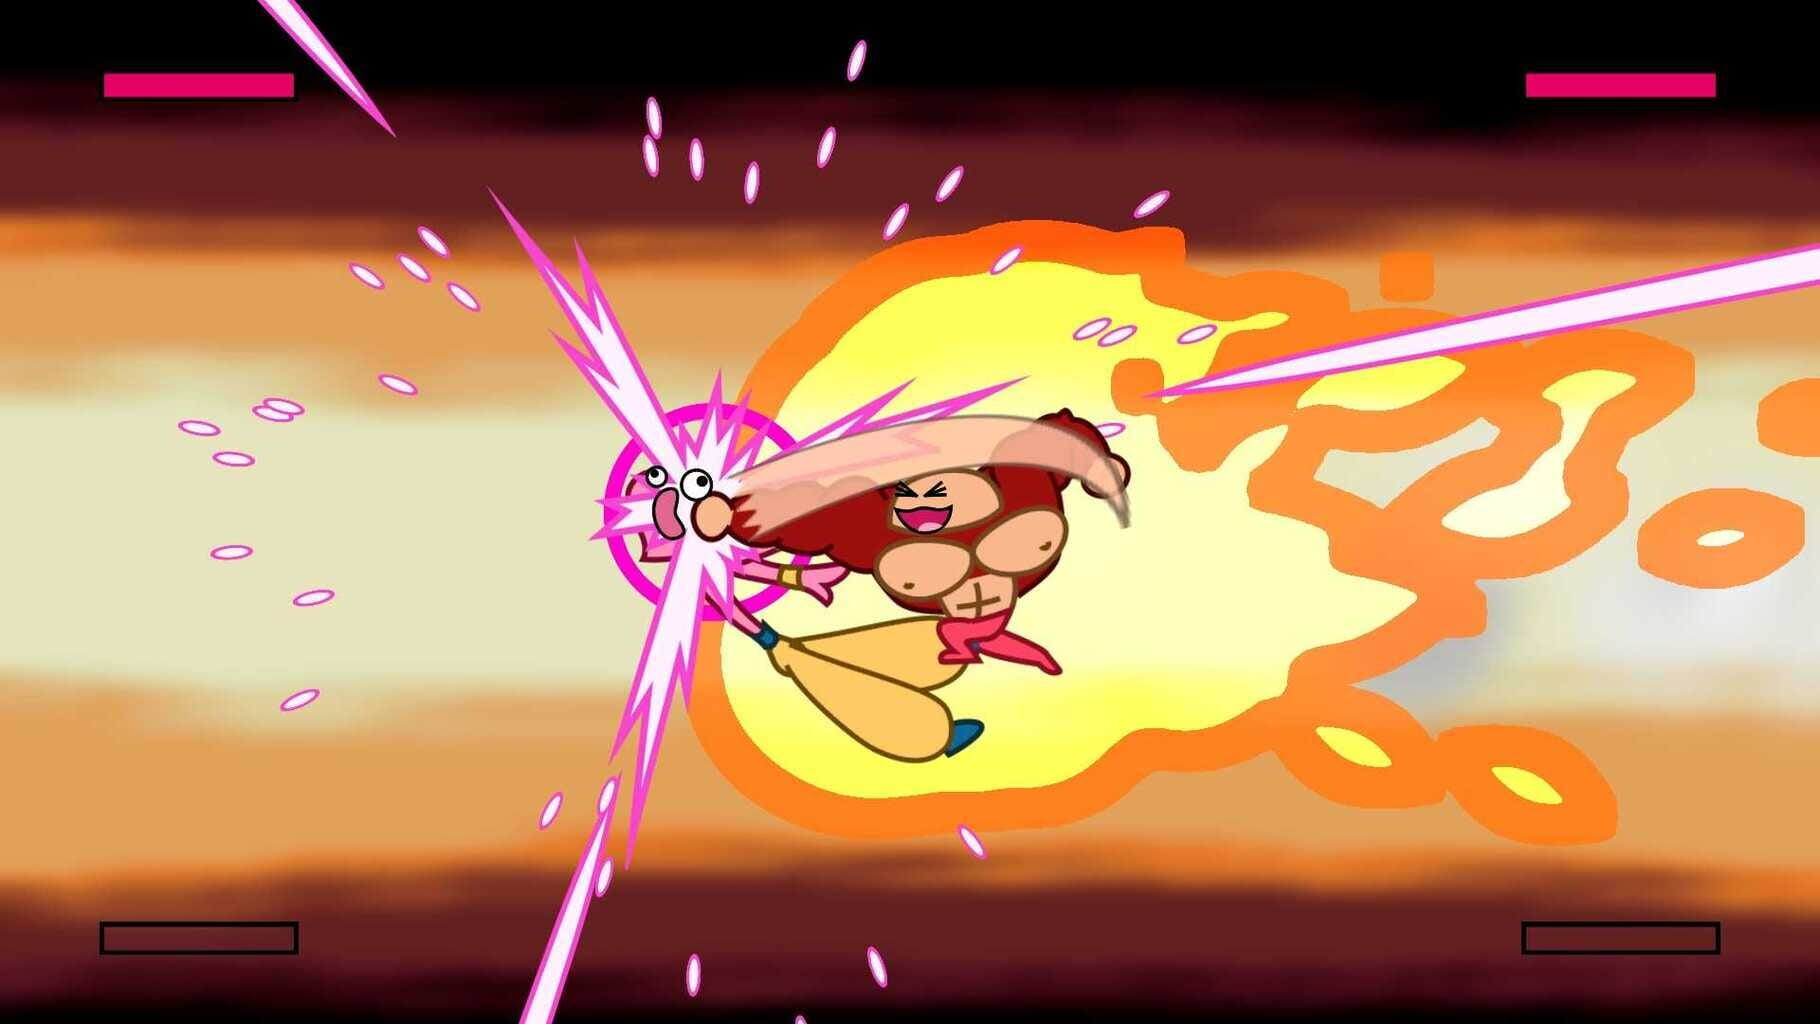 Gameplay Screenshot from Fly Punch Boom!